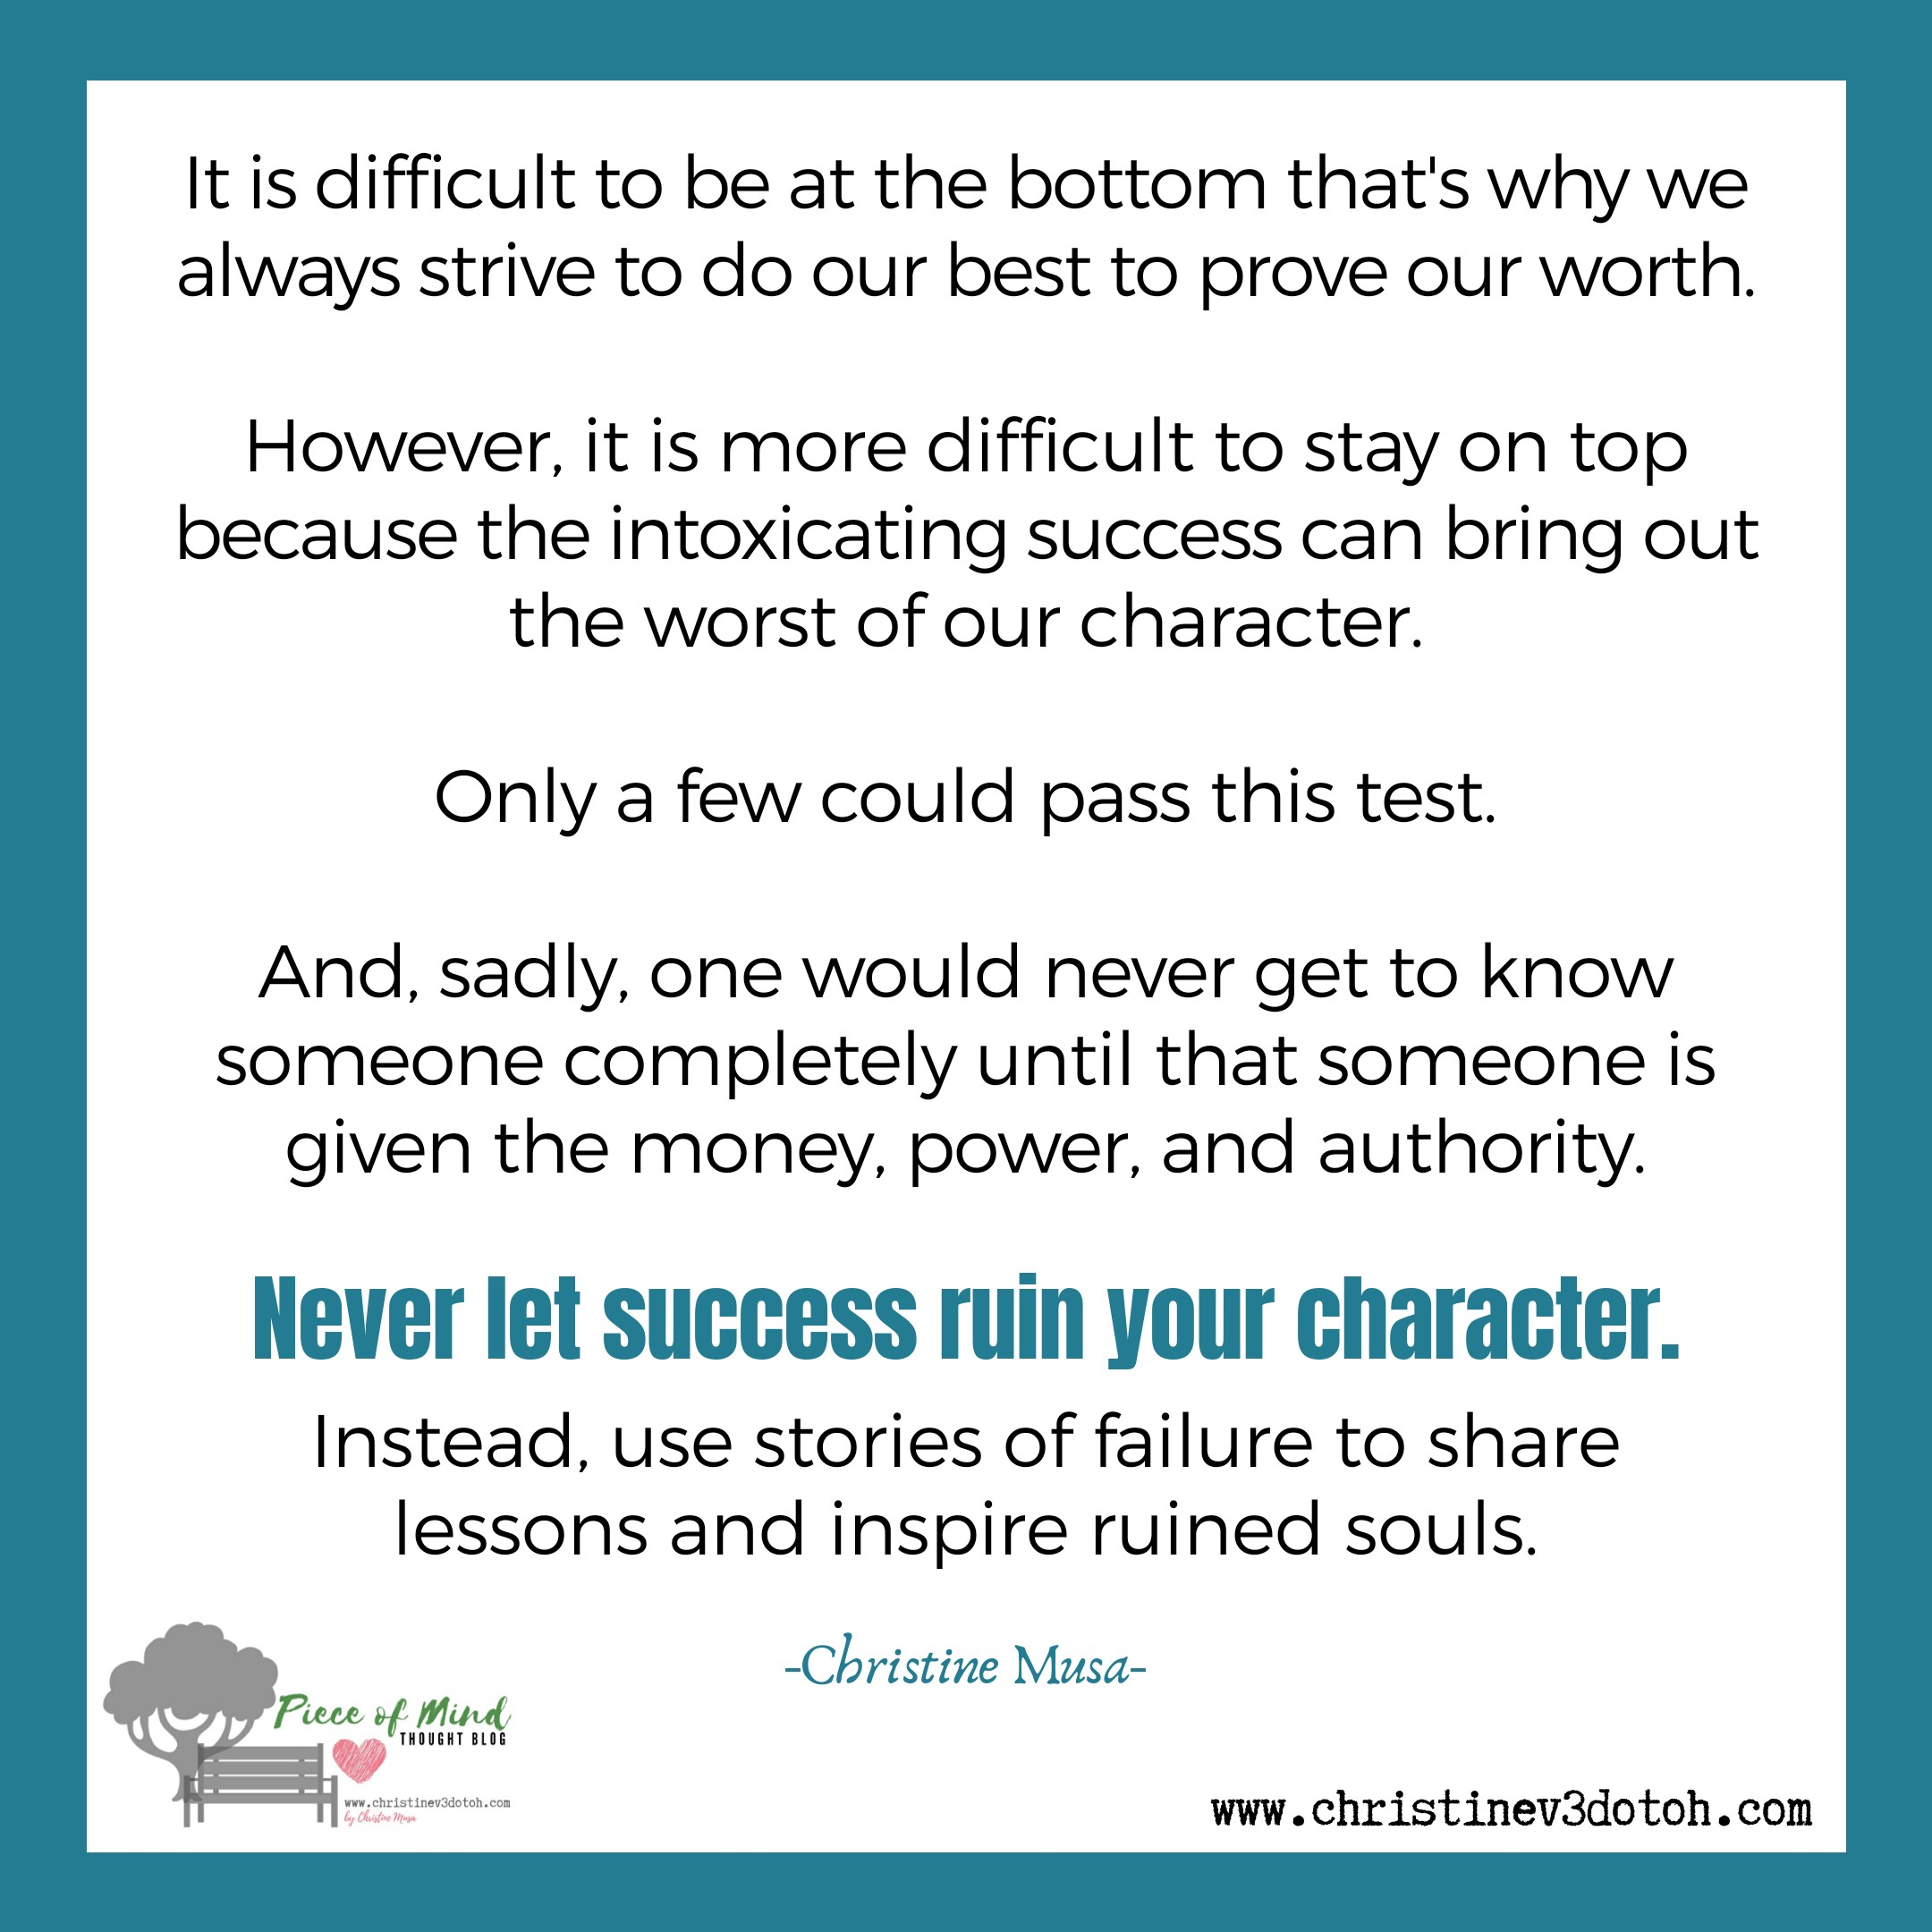 106.-Never-Let-Success-Ruin-Your-Character